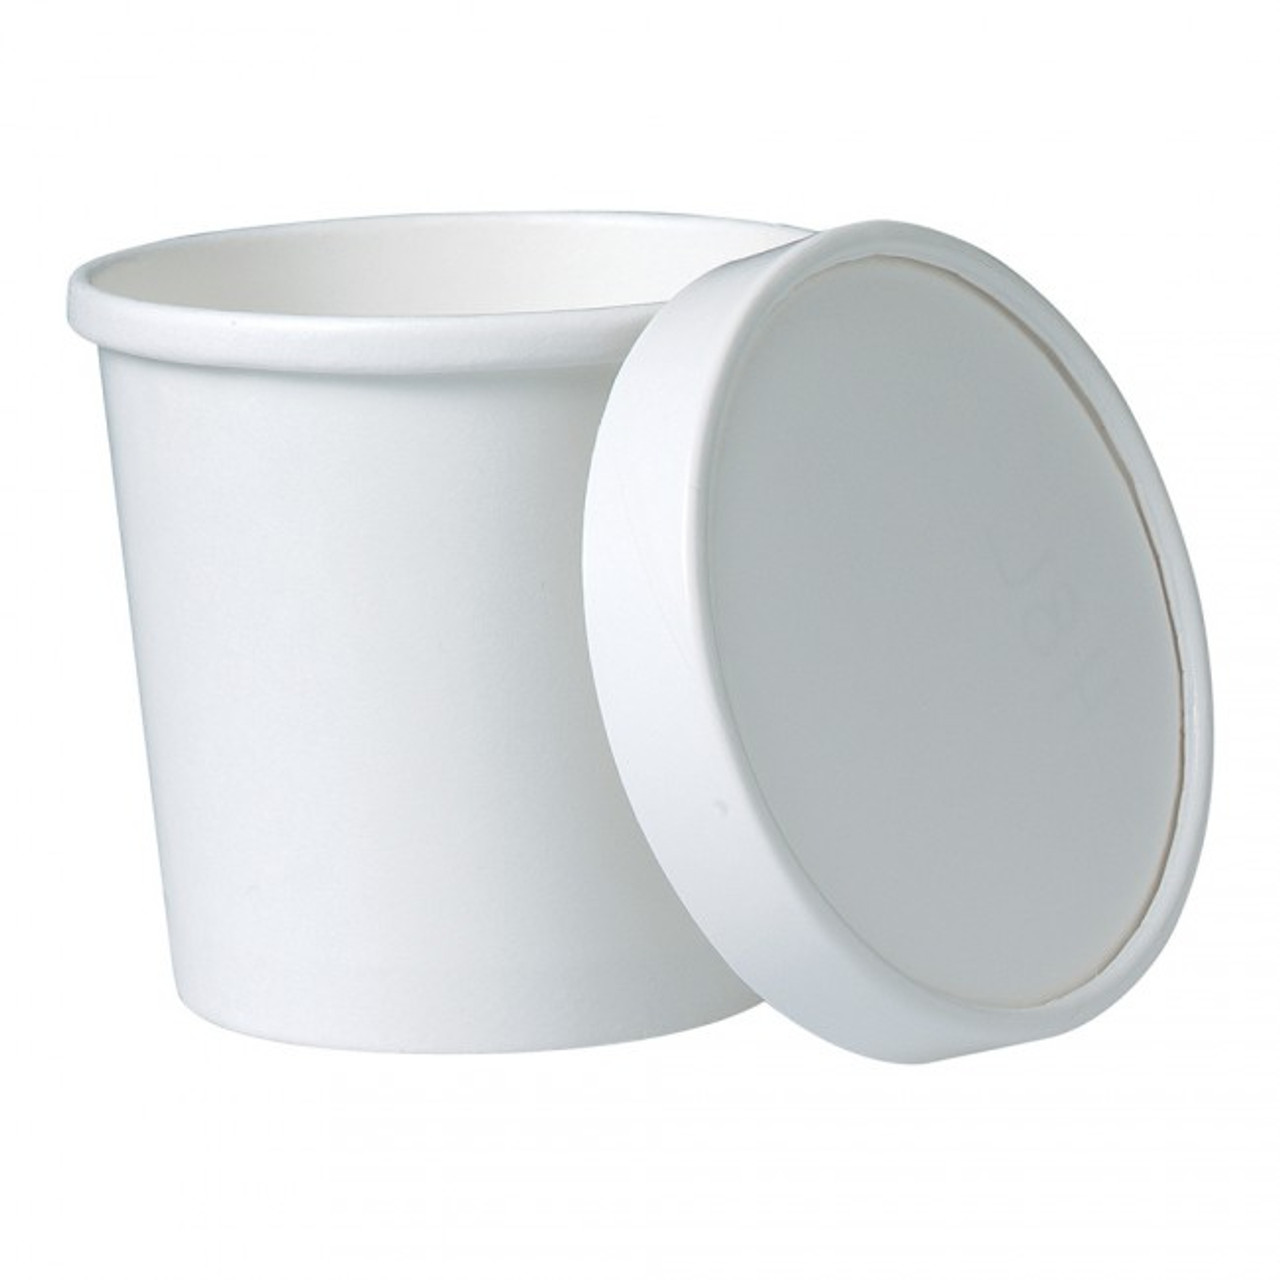 White Paper Food Container with Paper Lid - 12oz